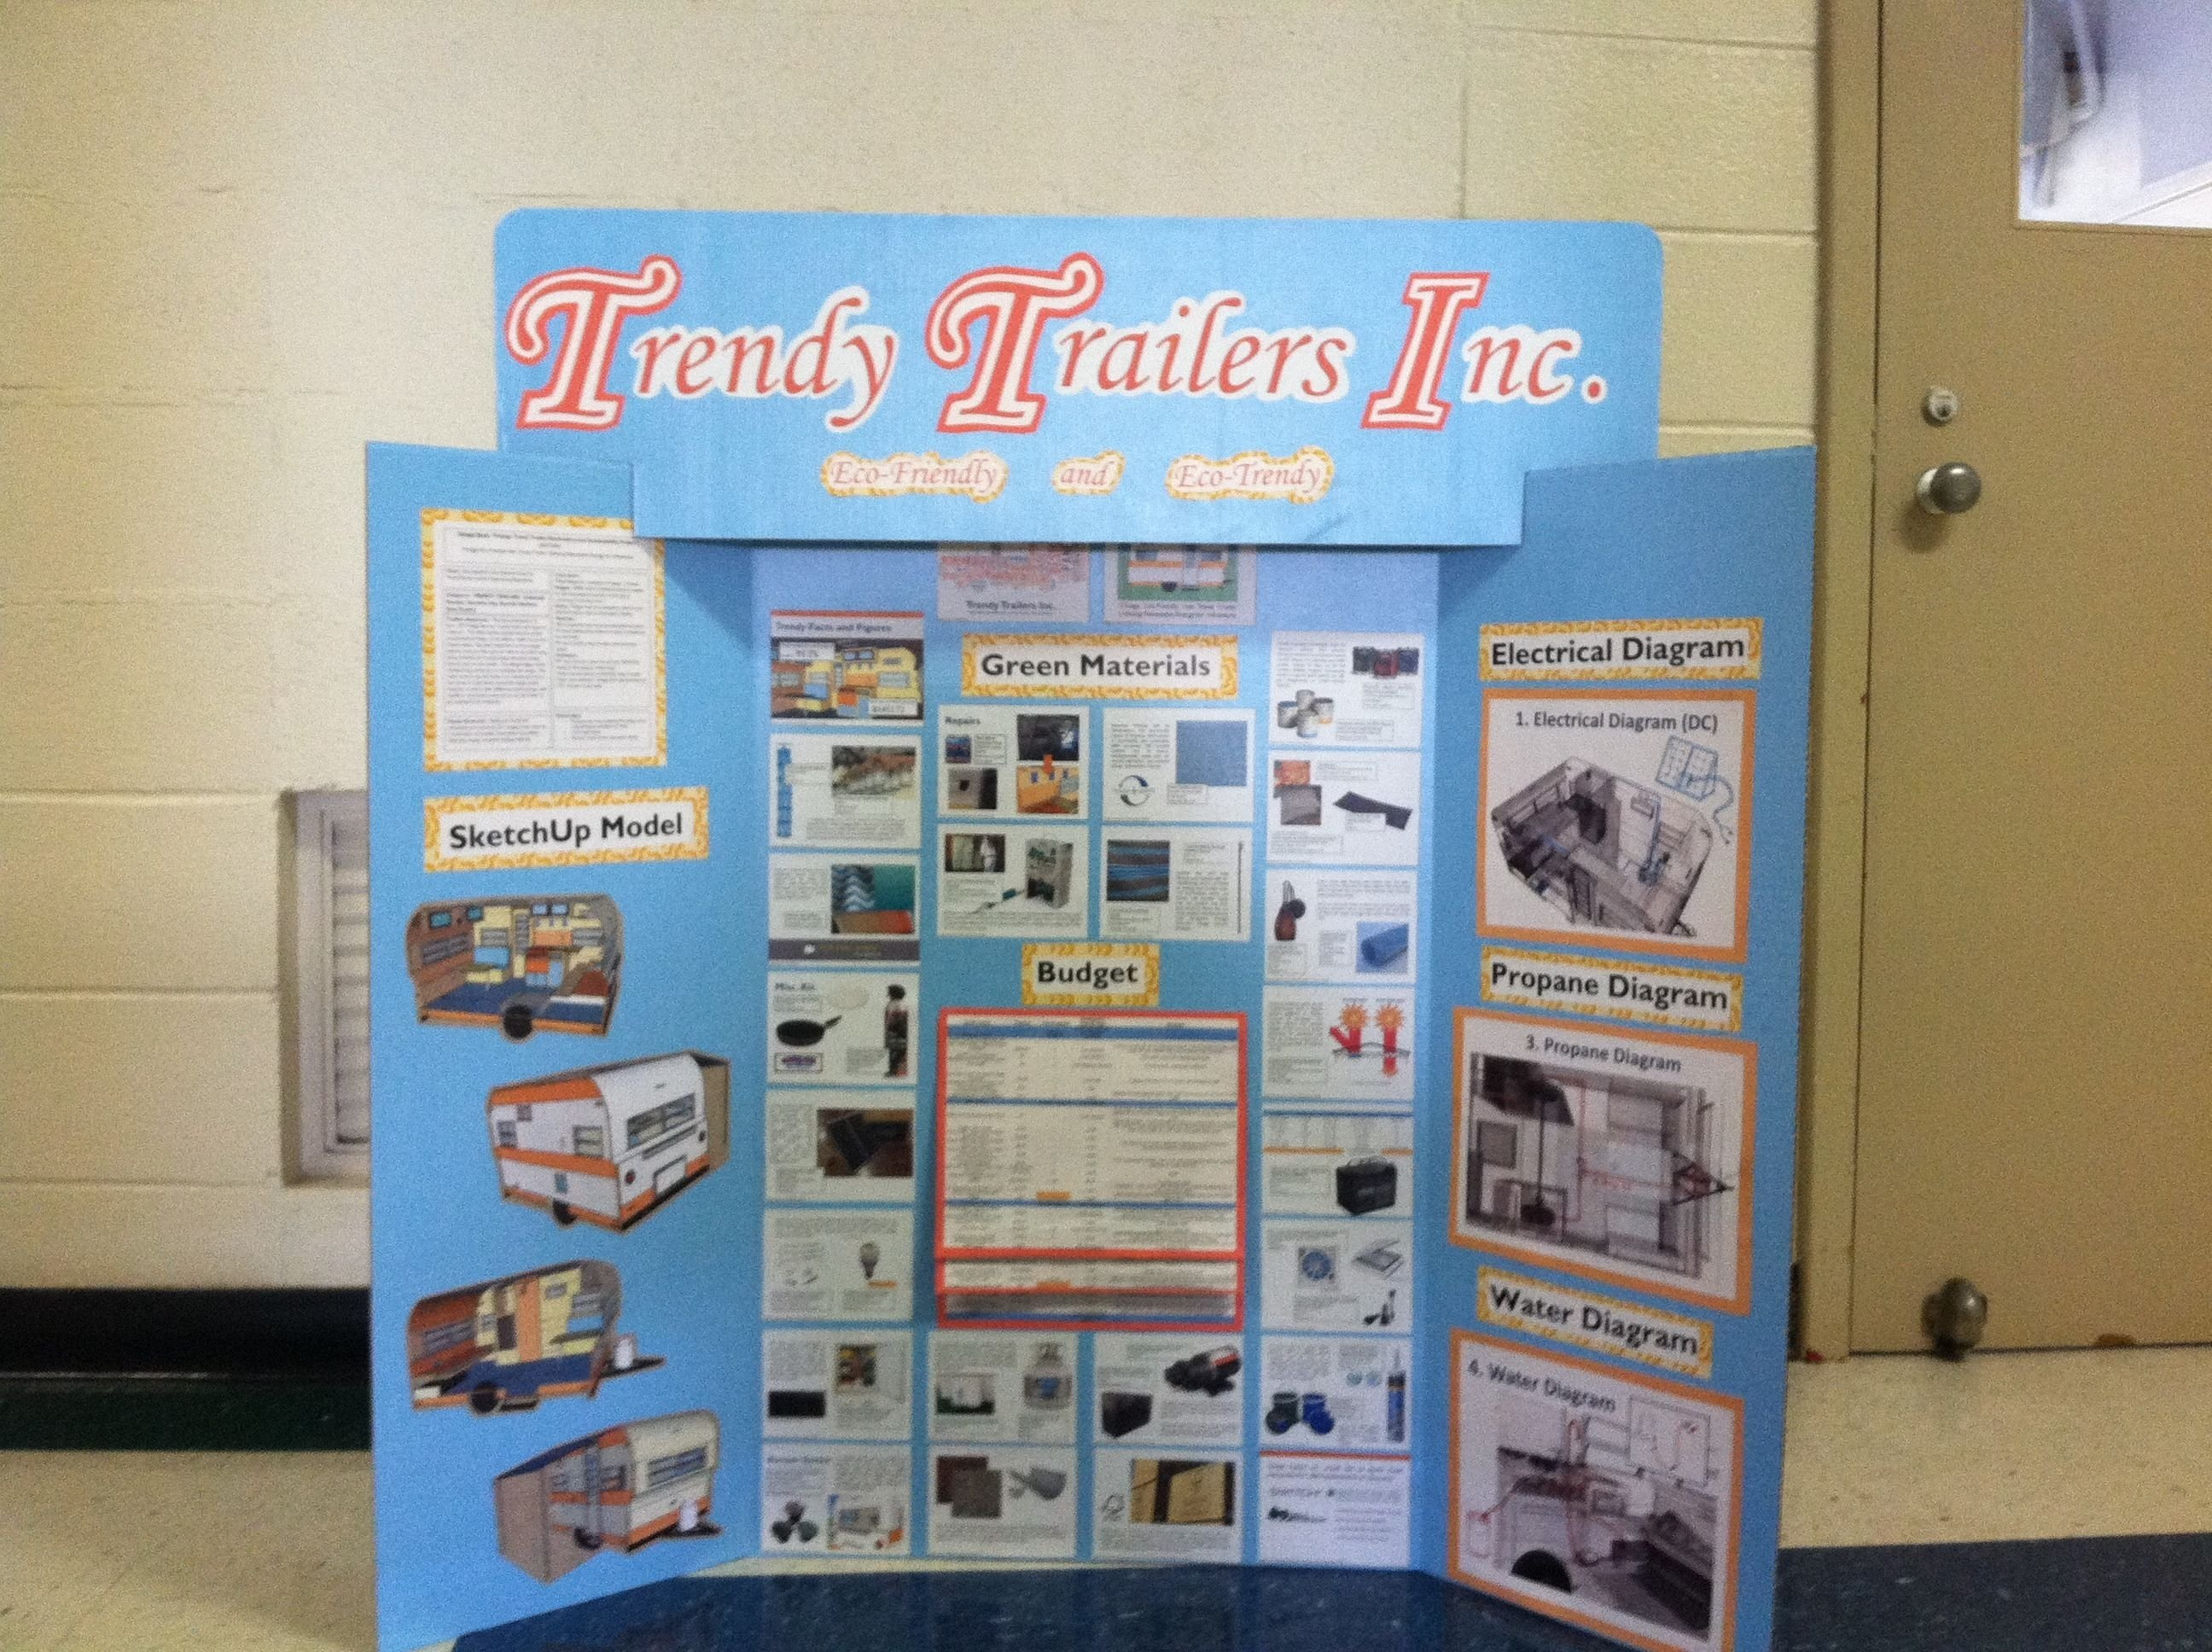 10 Best Poster Board Ideas For School Projects trifold poster board ideas google search a way to keep the board 2020